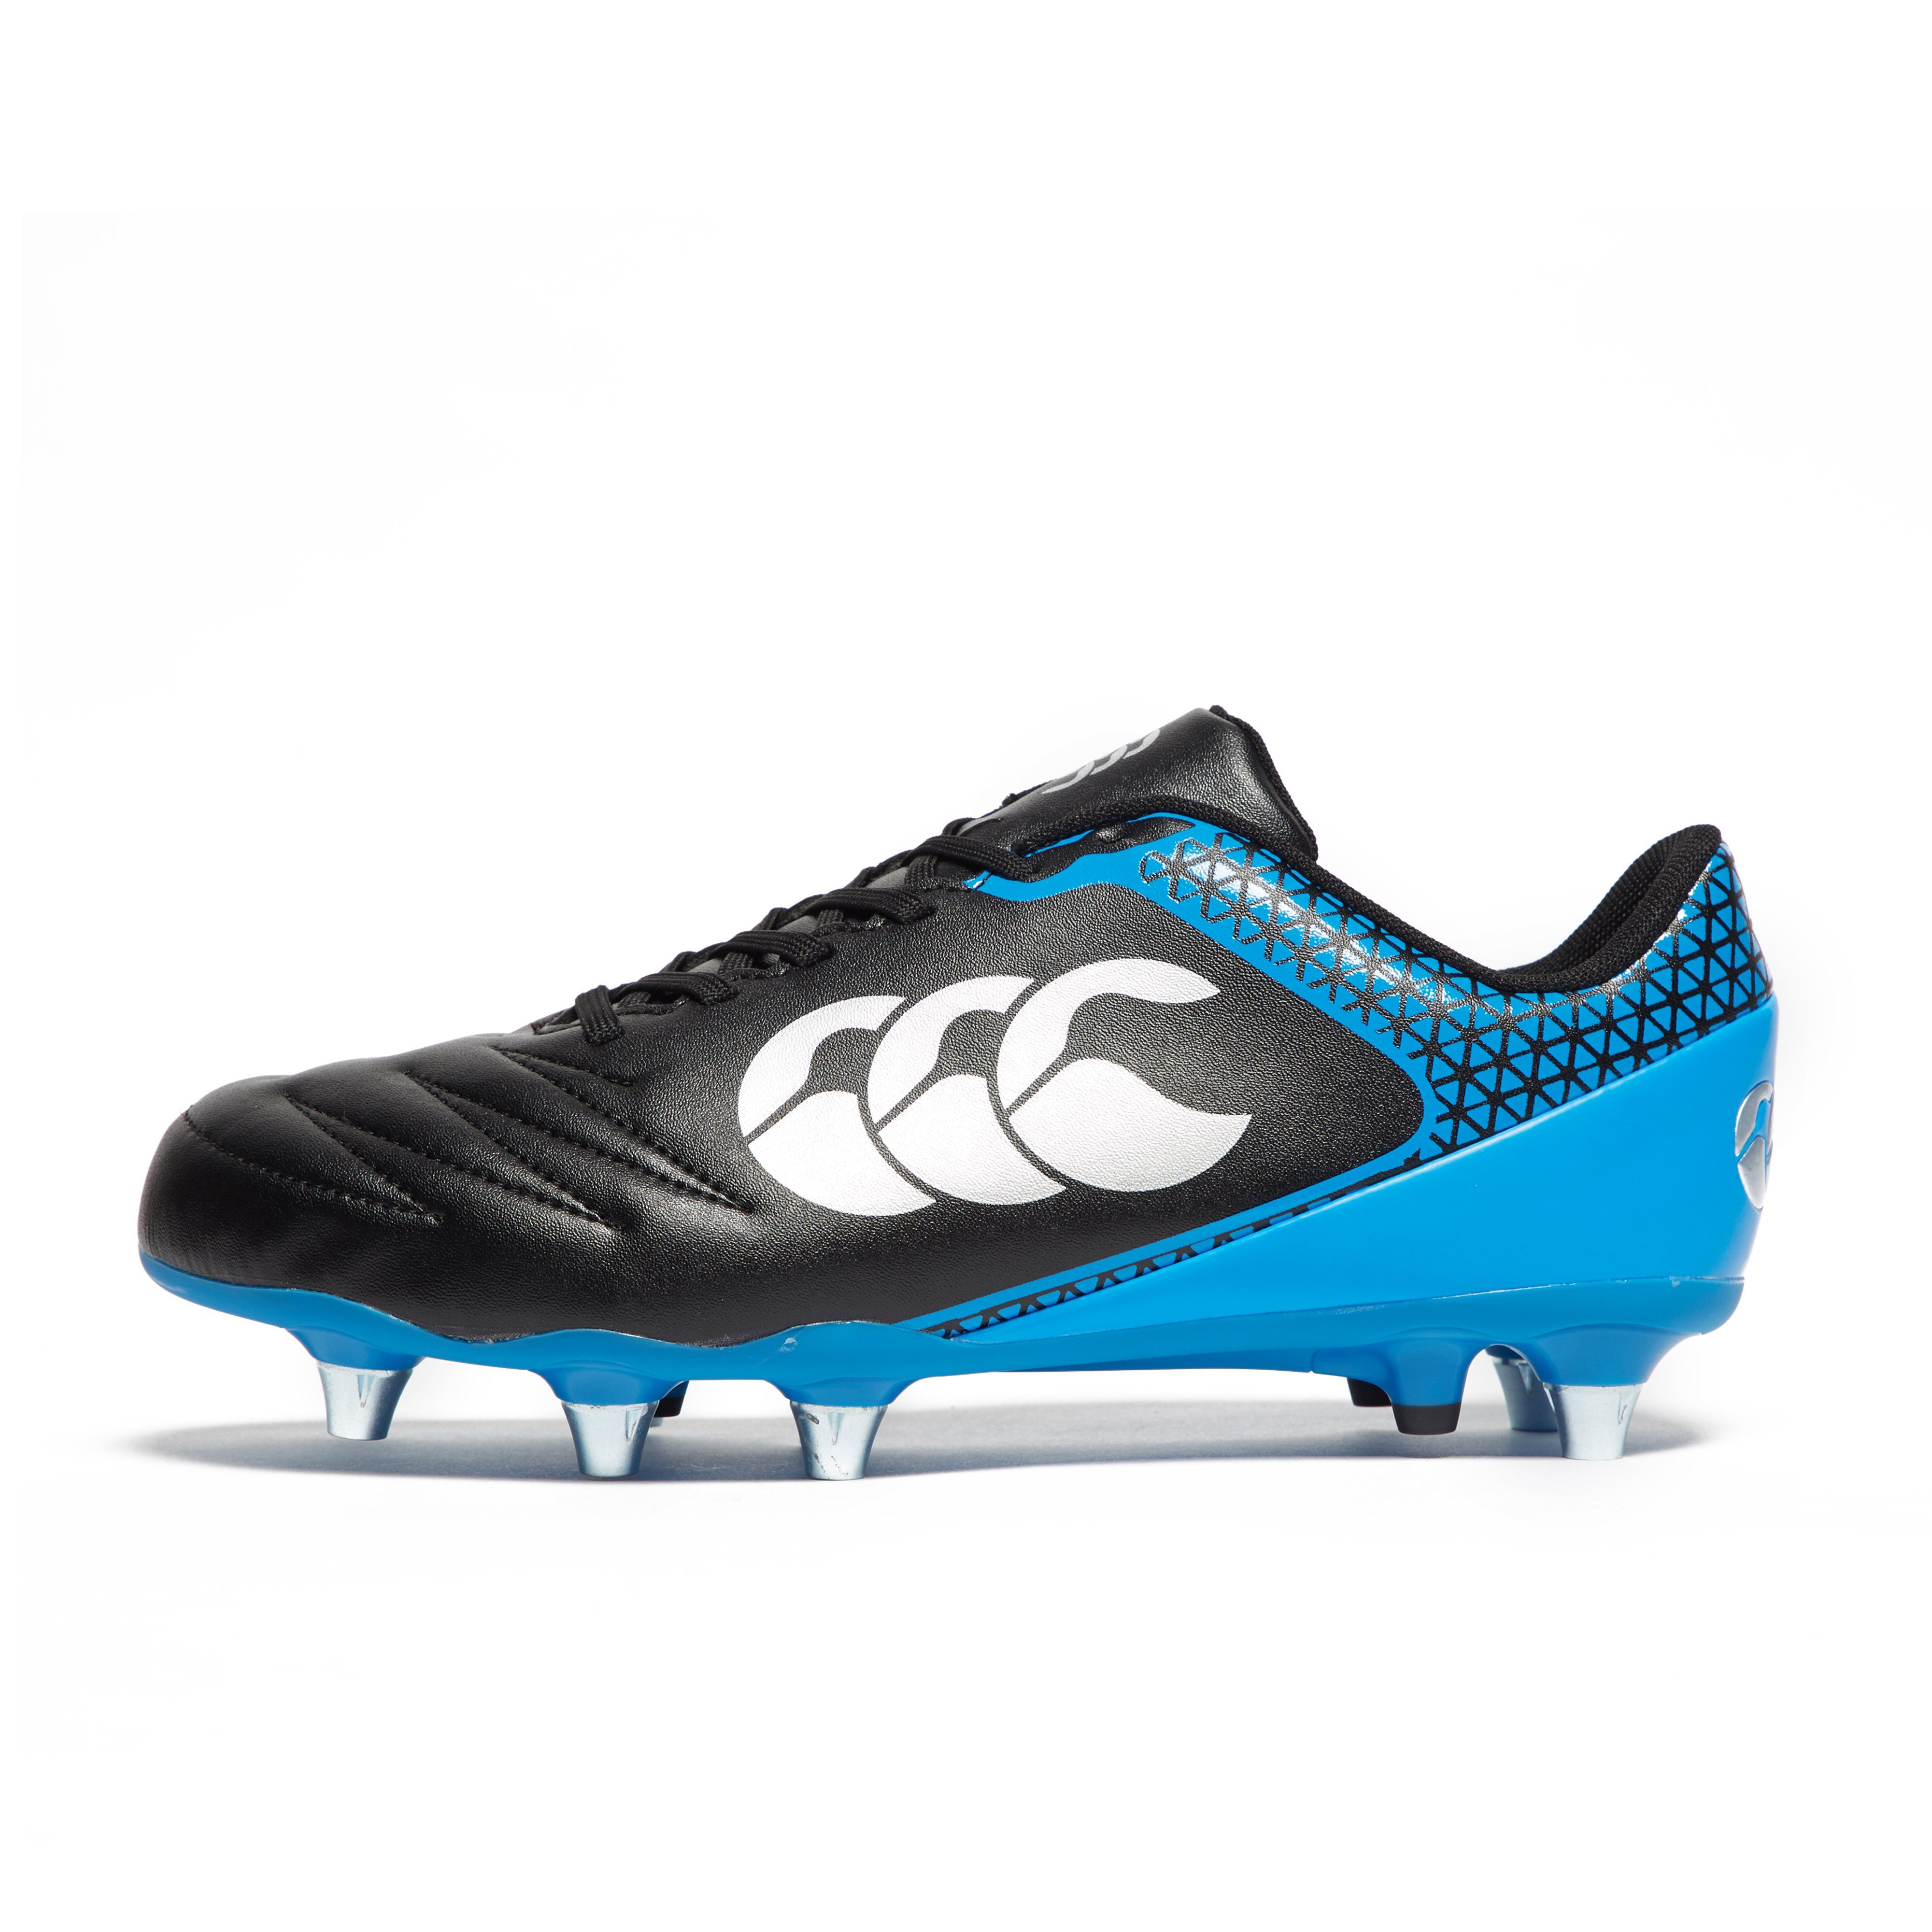 Canterbury Stampede 2.0 SG Men's Rugby Boots